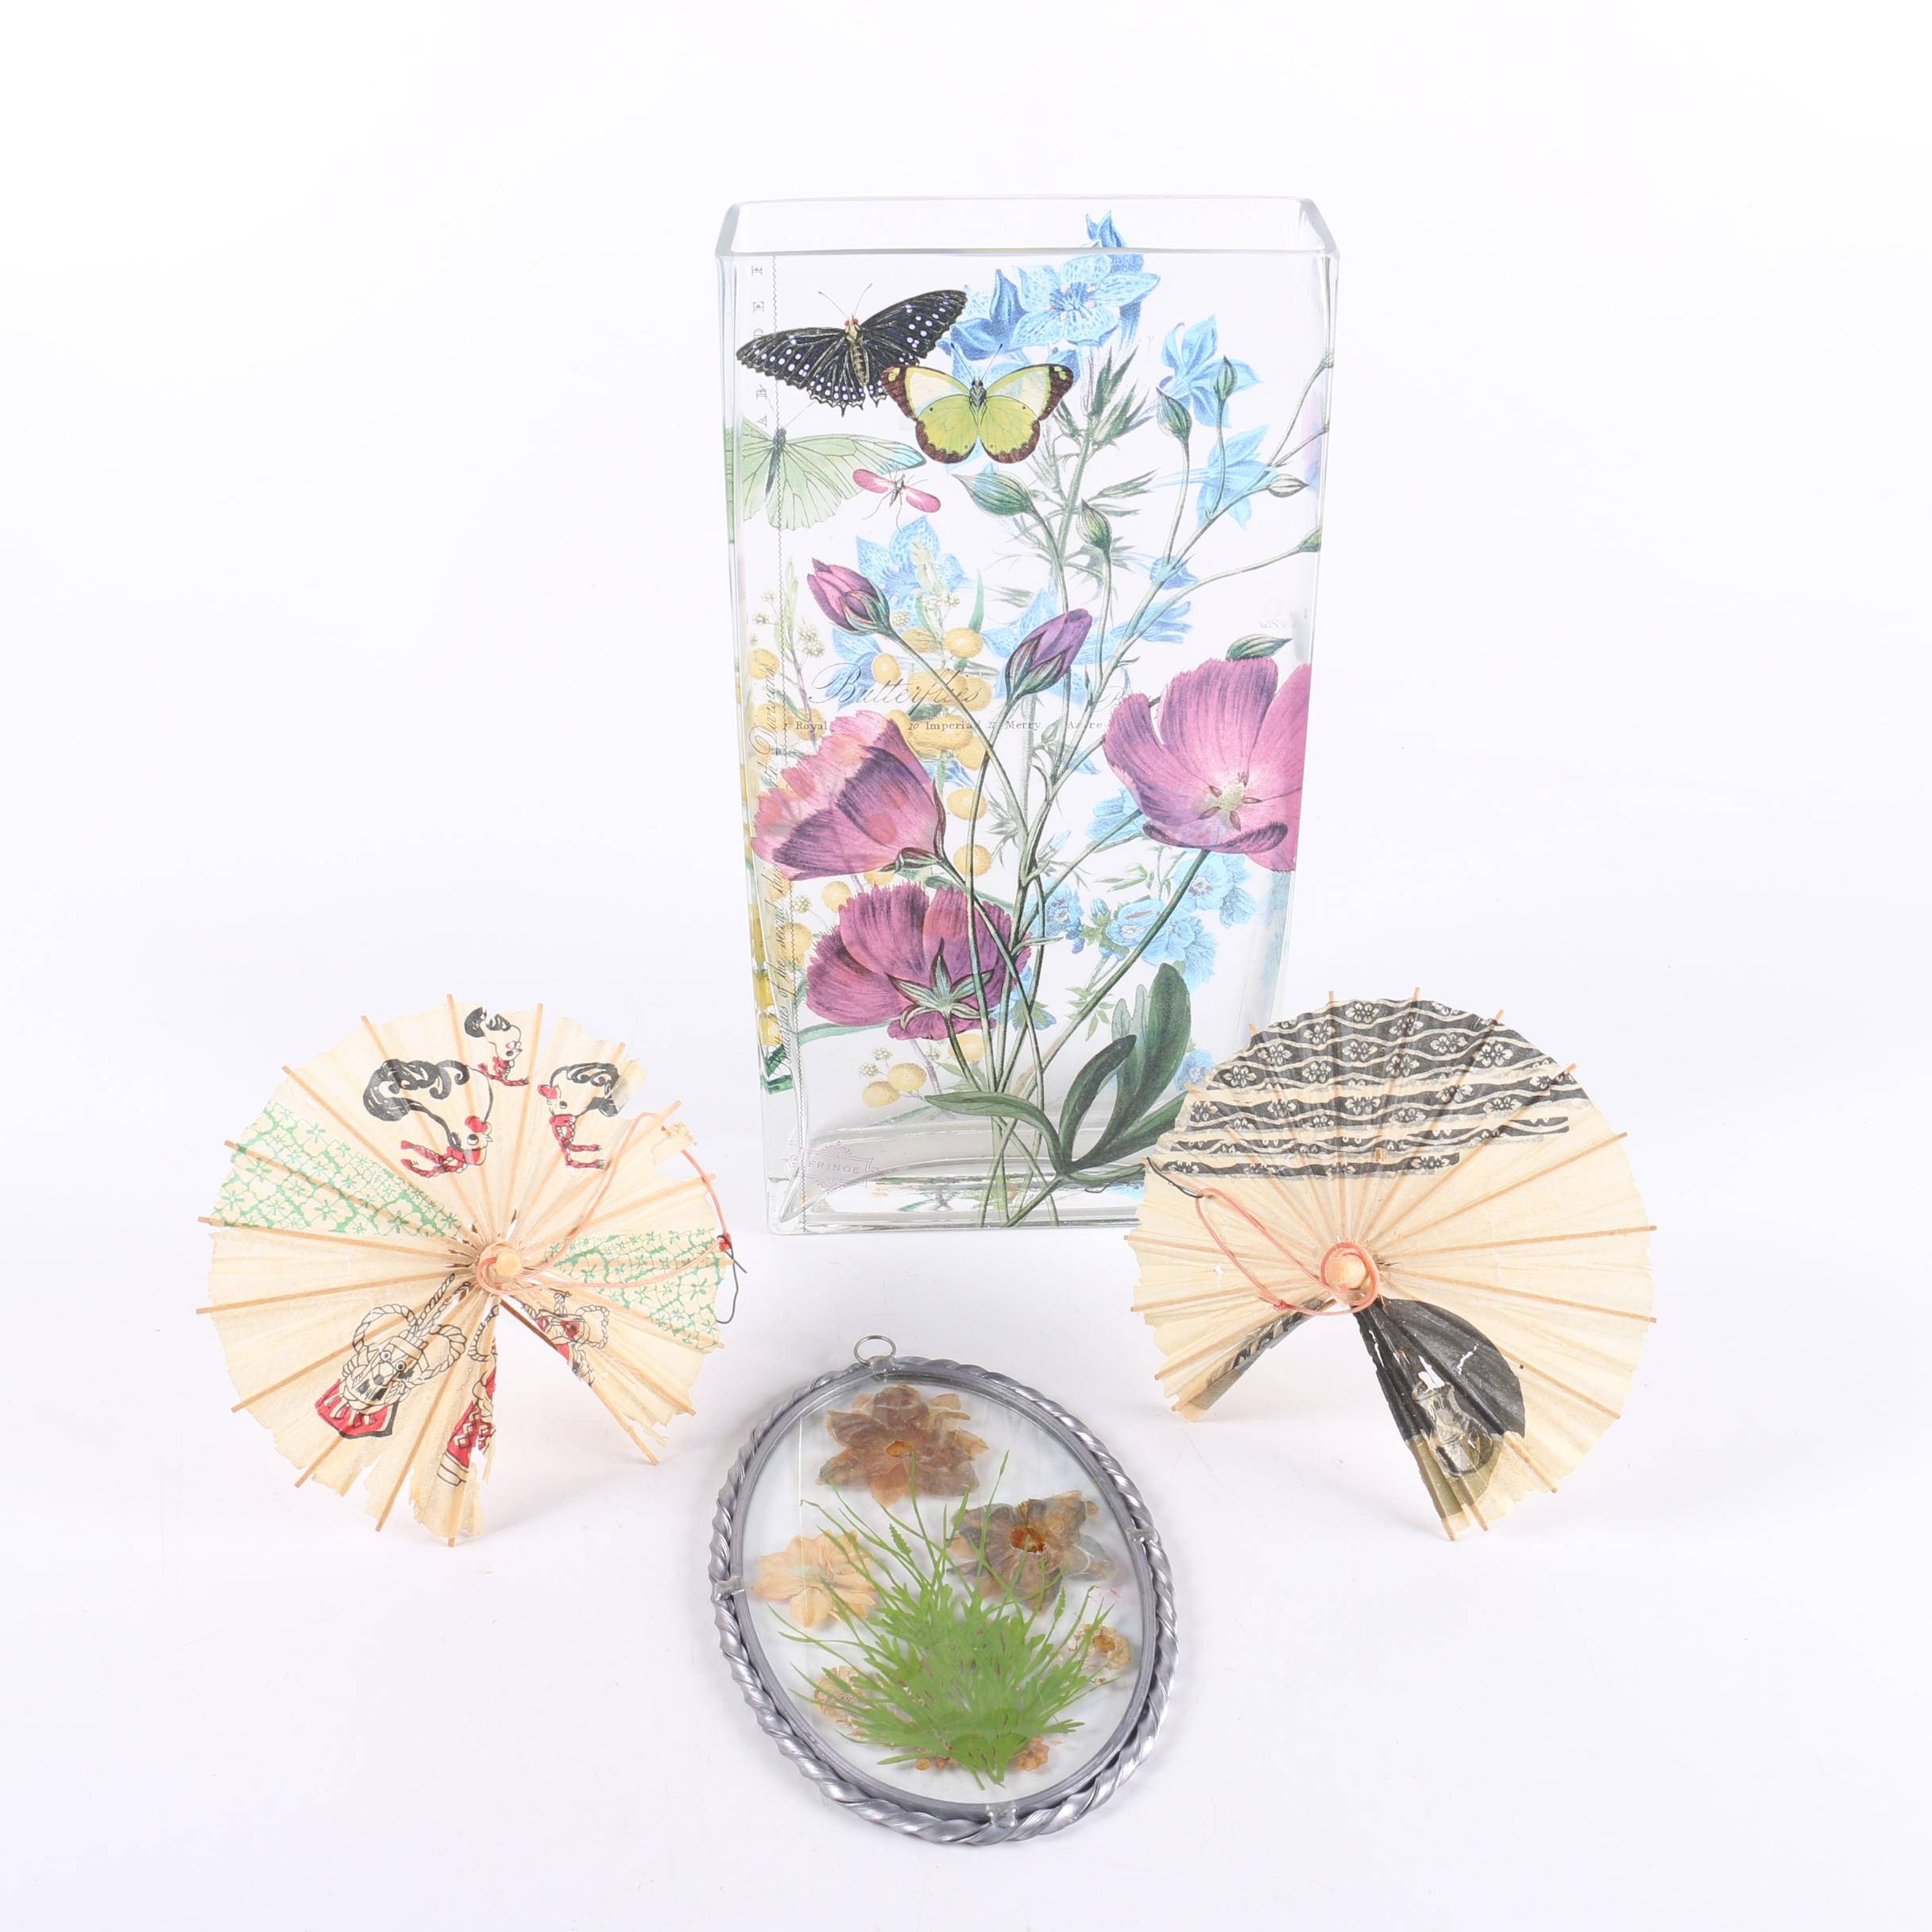 Floral Glass Vase, Pressed Flowers and Fans